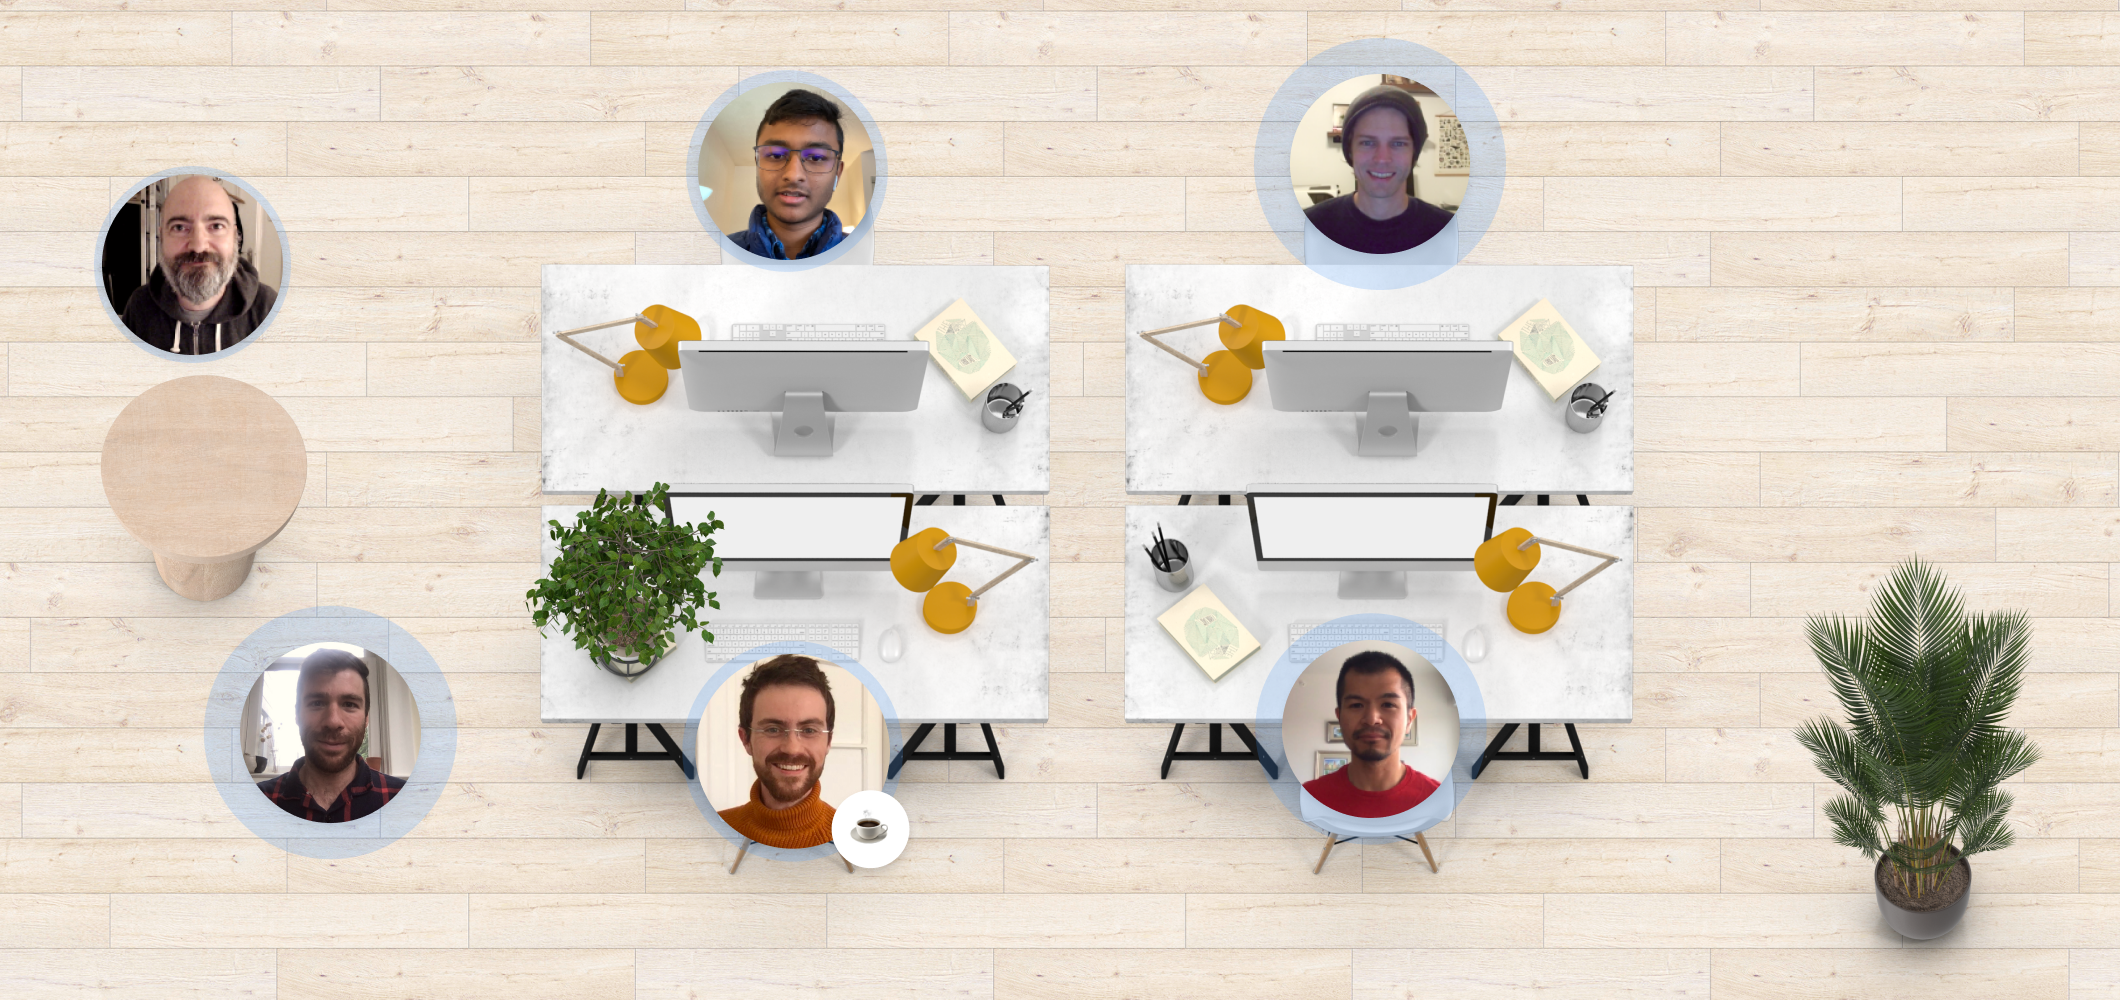 Feel Like a Team Again With Teamflow, Your Own Virtual Office